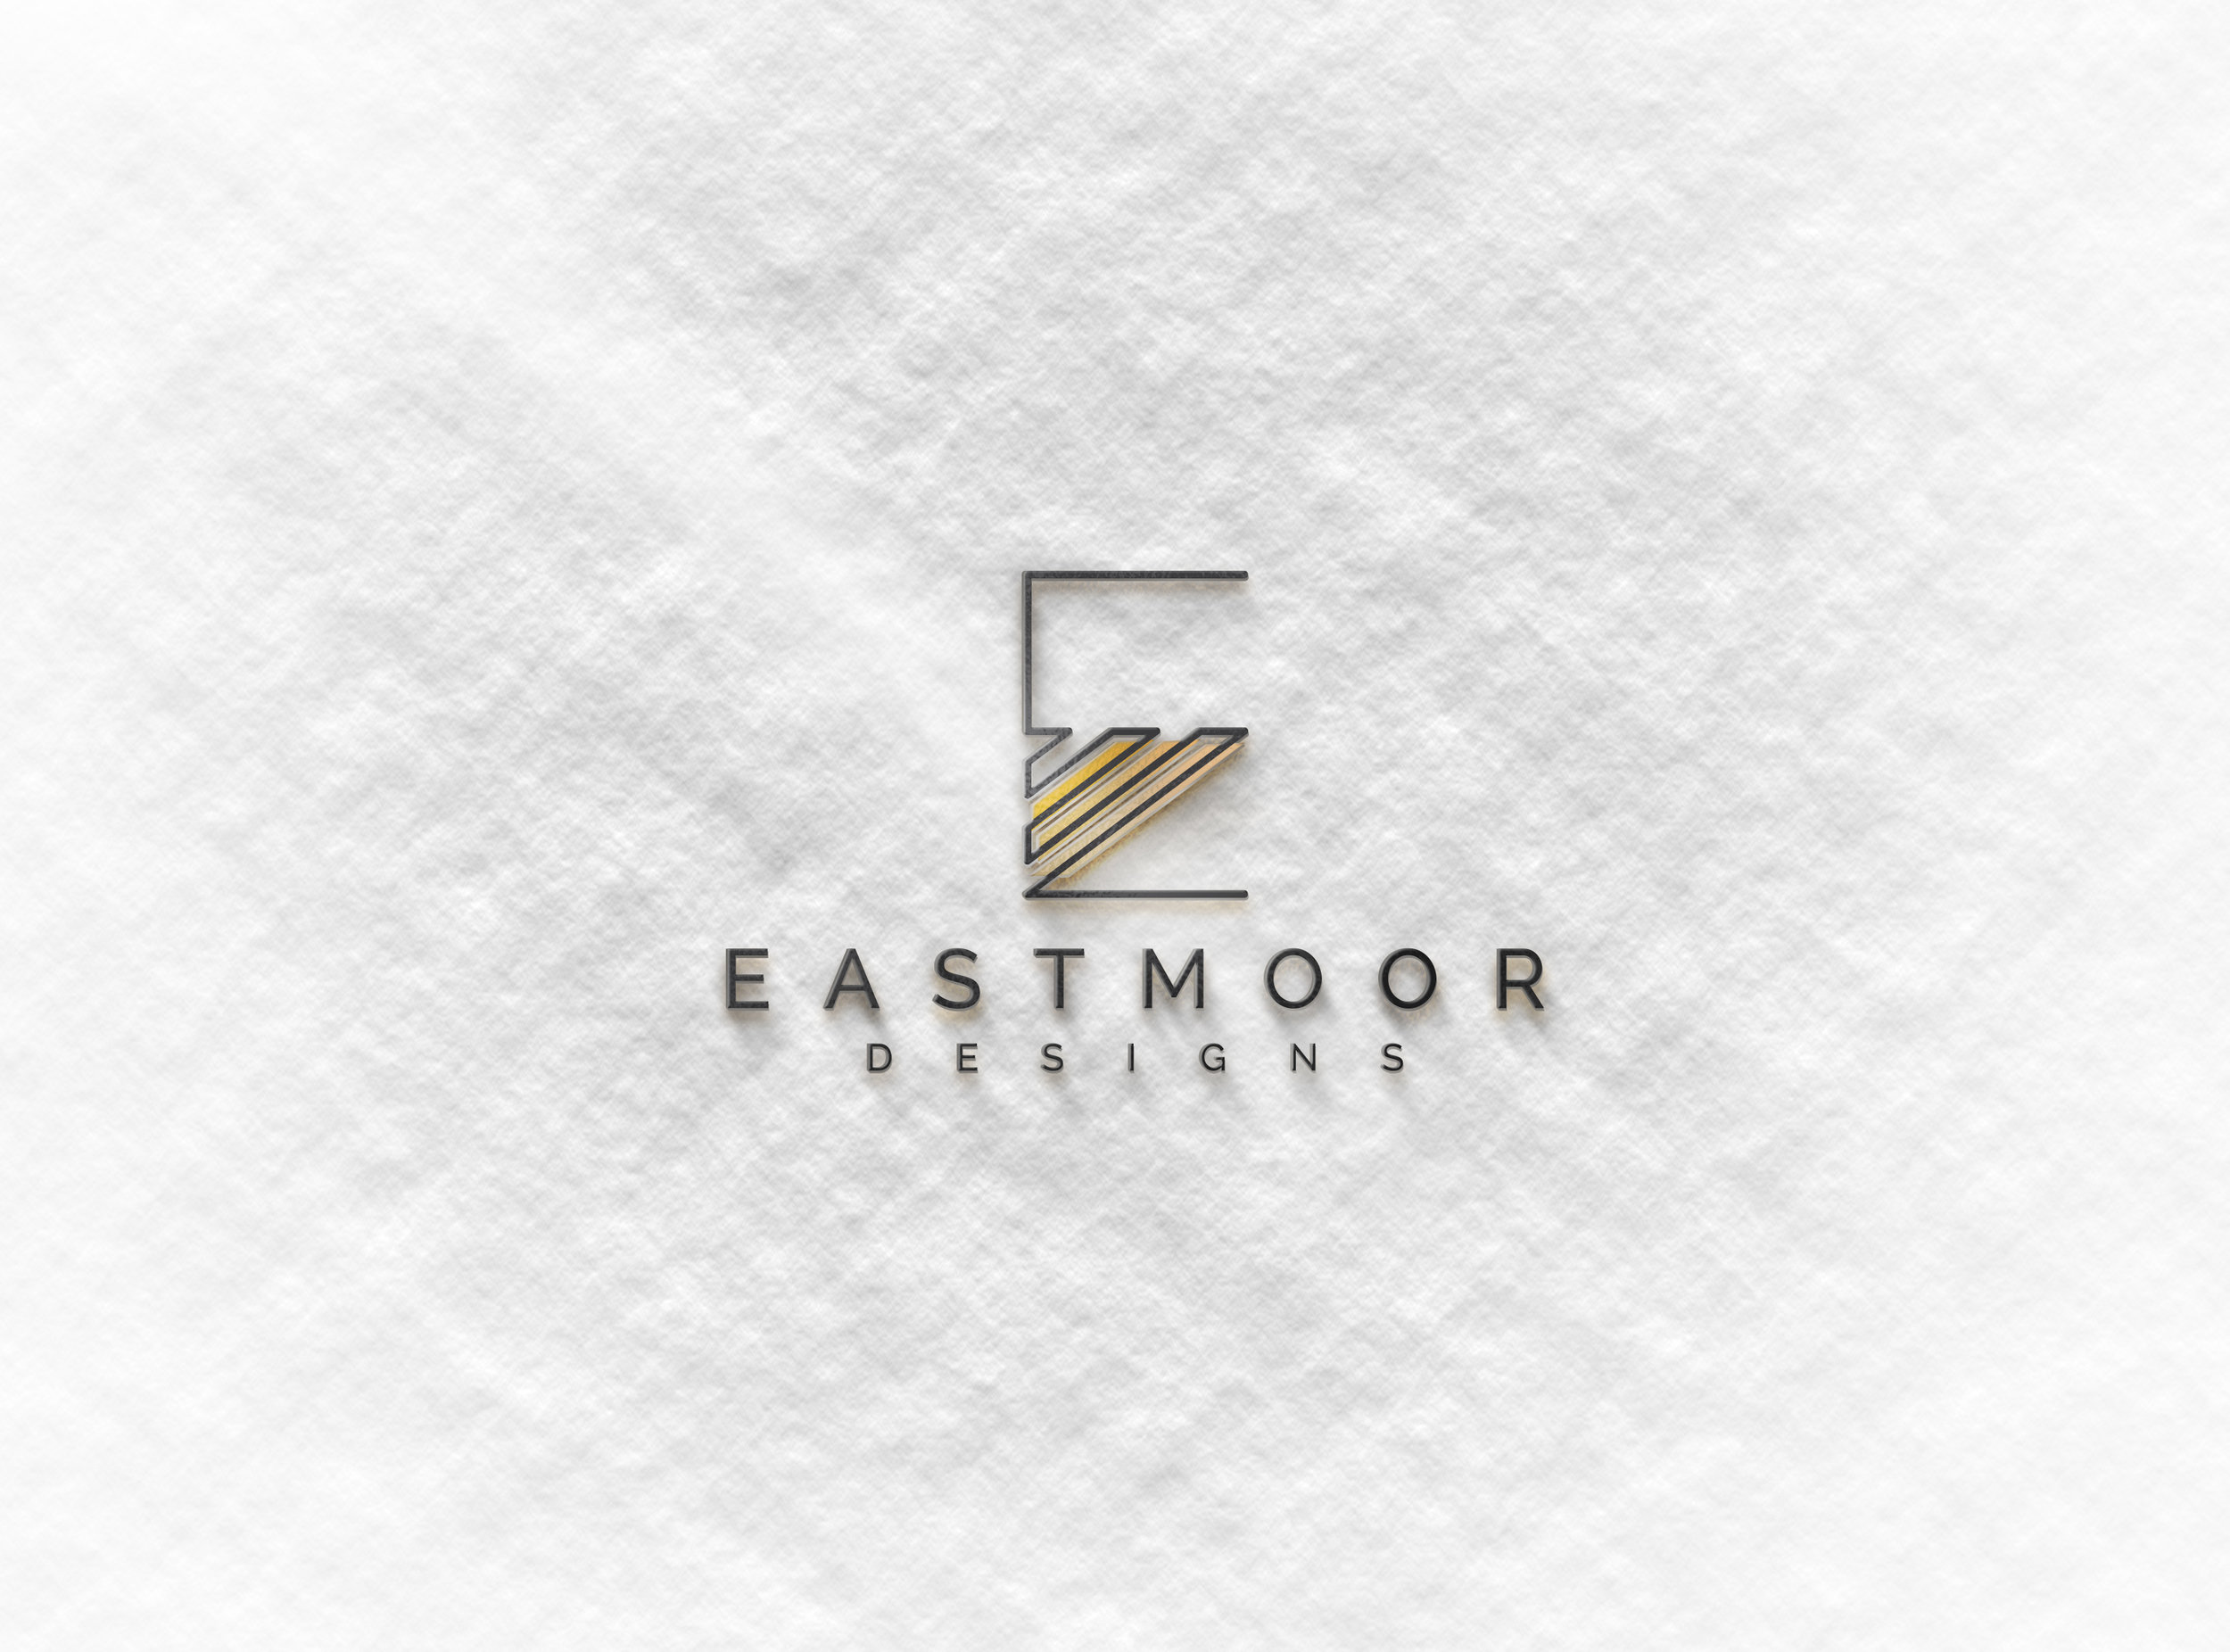 Eastmoor Designs. Full Service Interior Design Firm